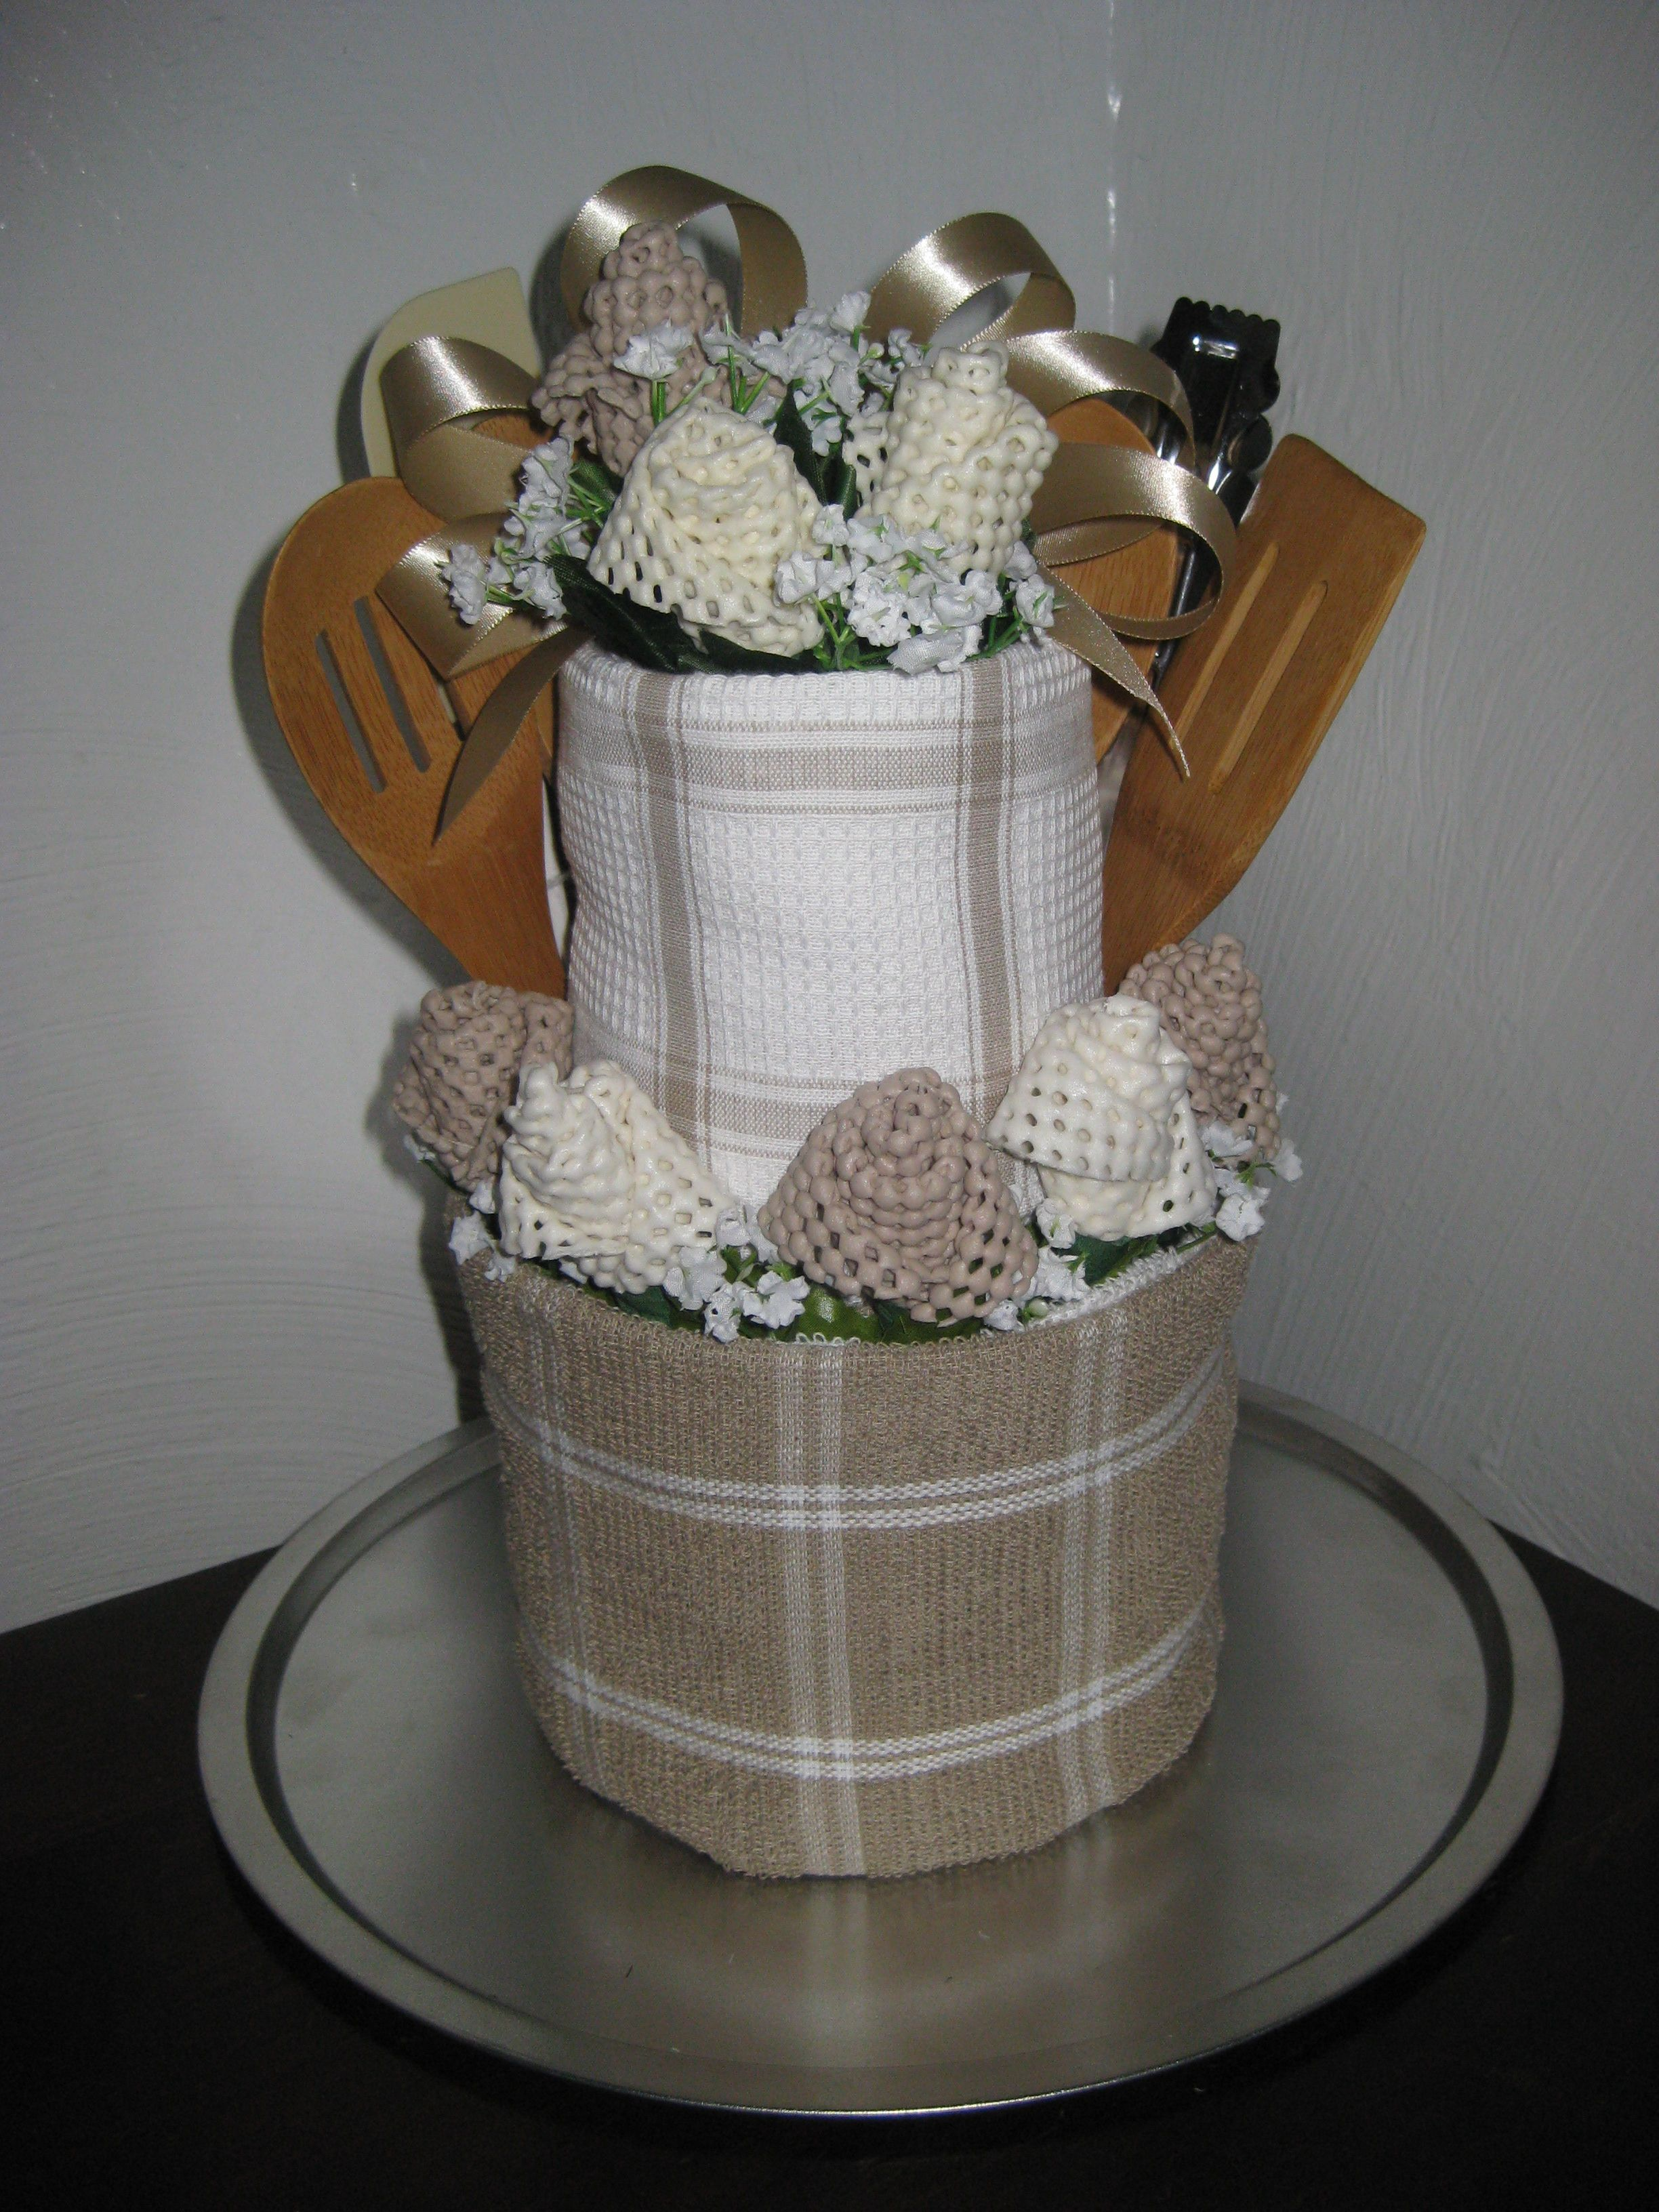 Towel Cake Housewarming Gift made with rolled kitchen